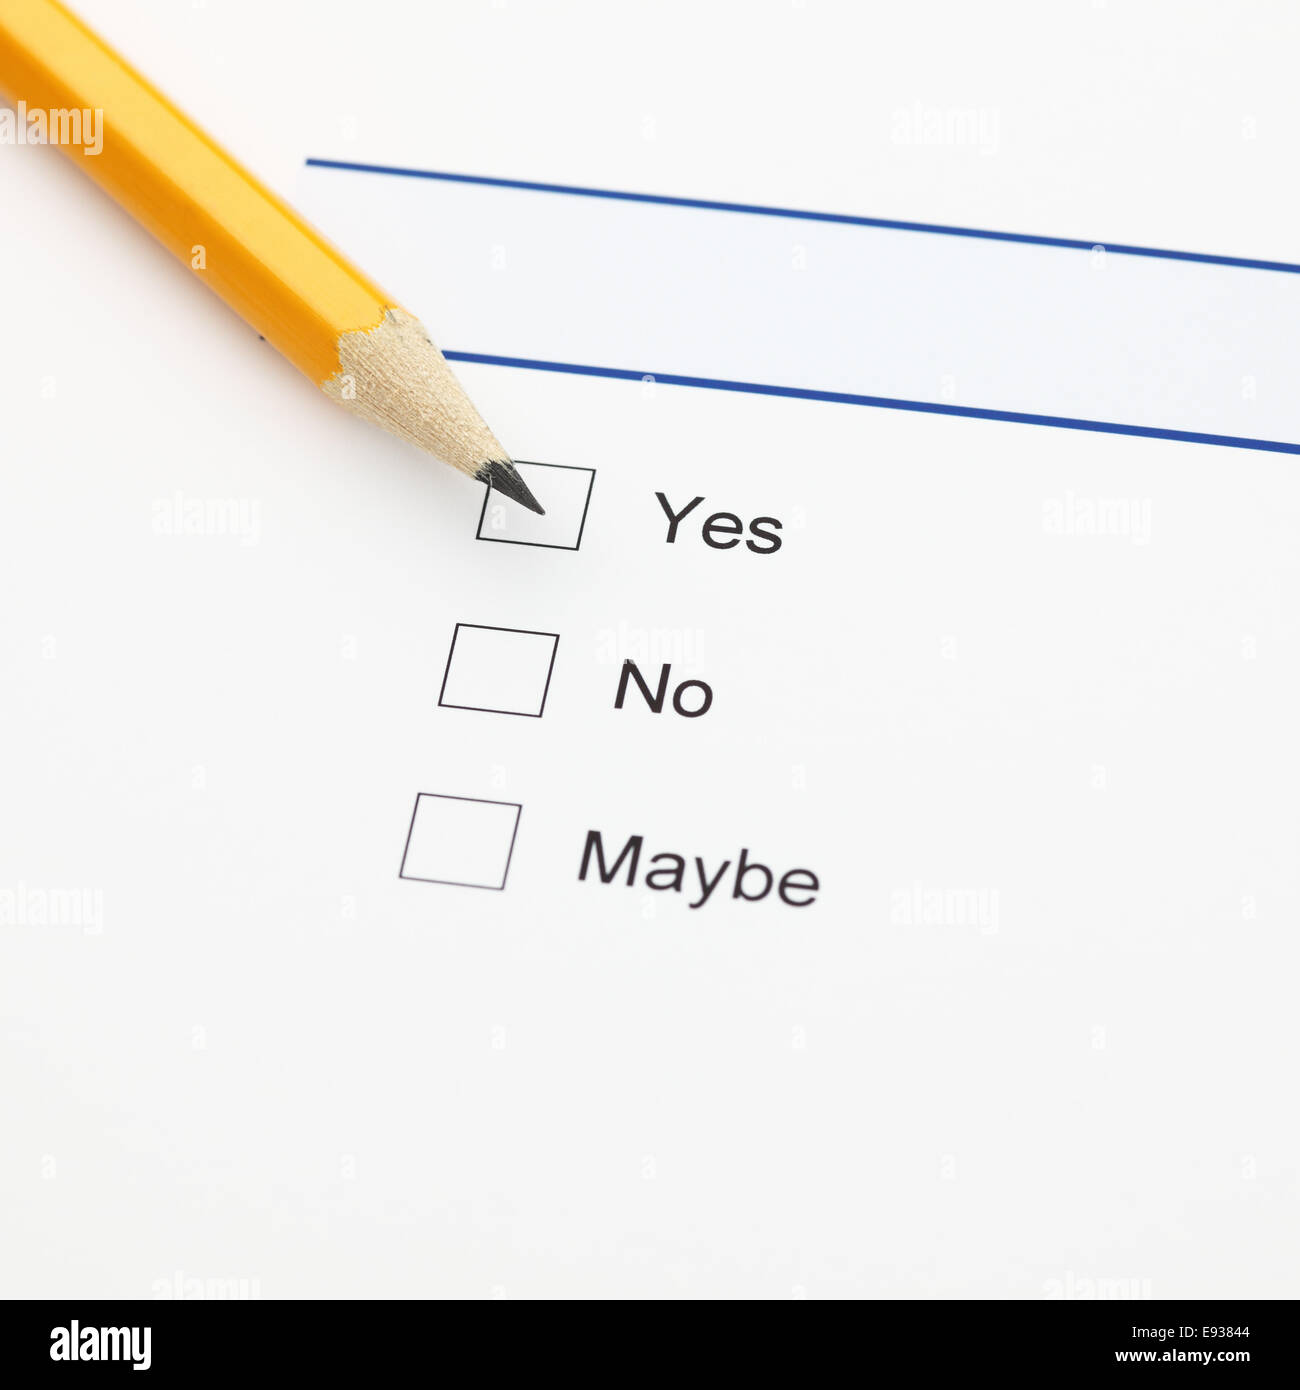 Survey: yes, no, maybe, and pencil - Stock Image